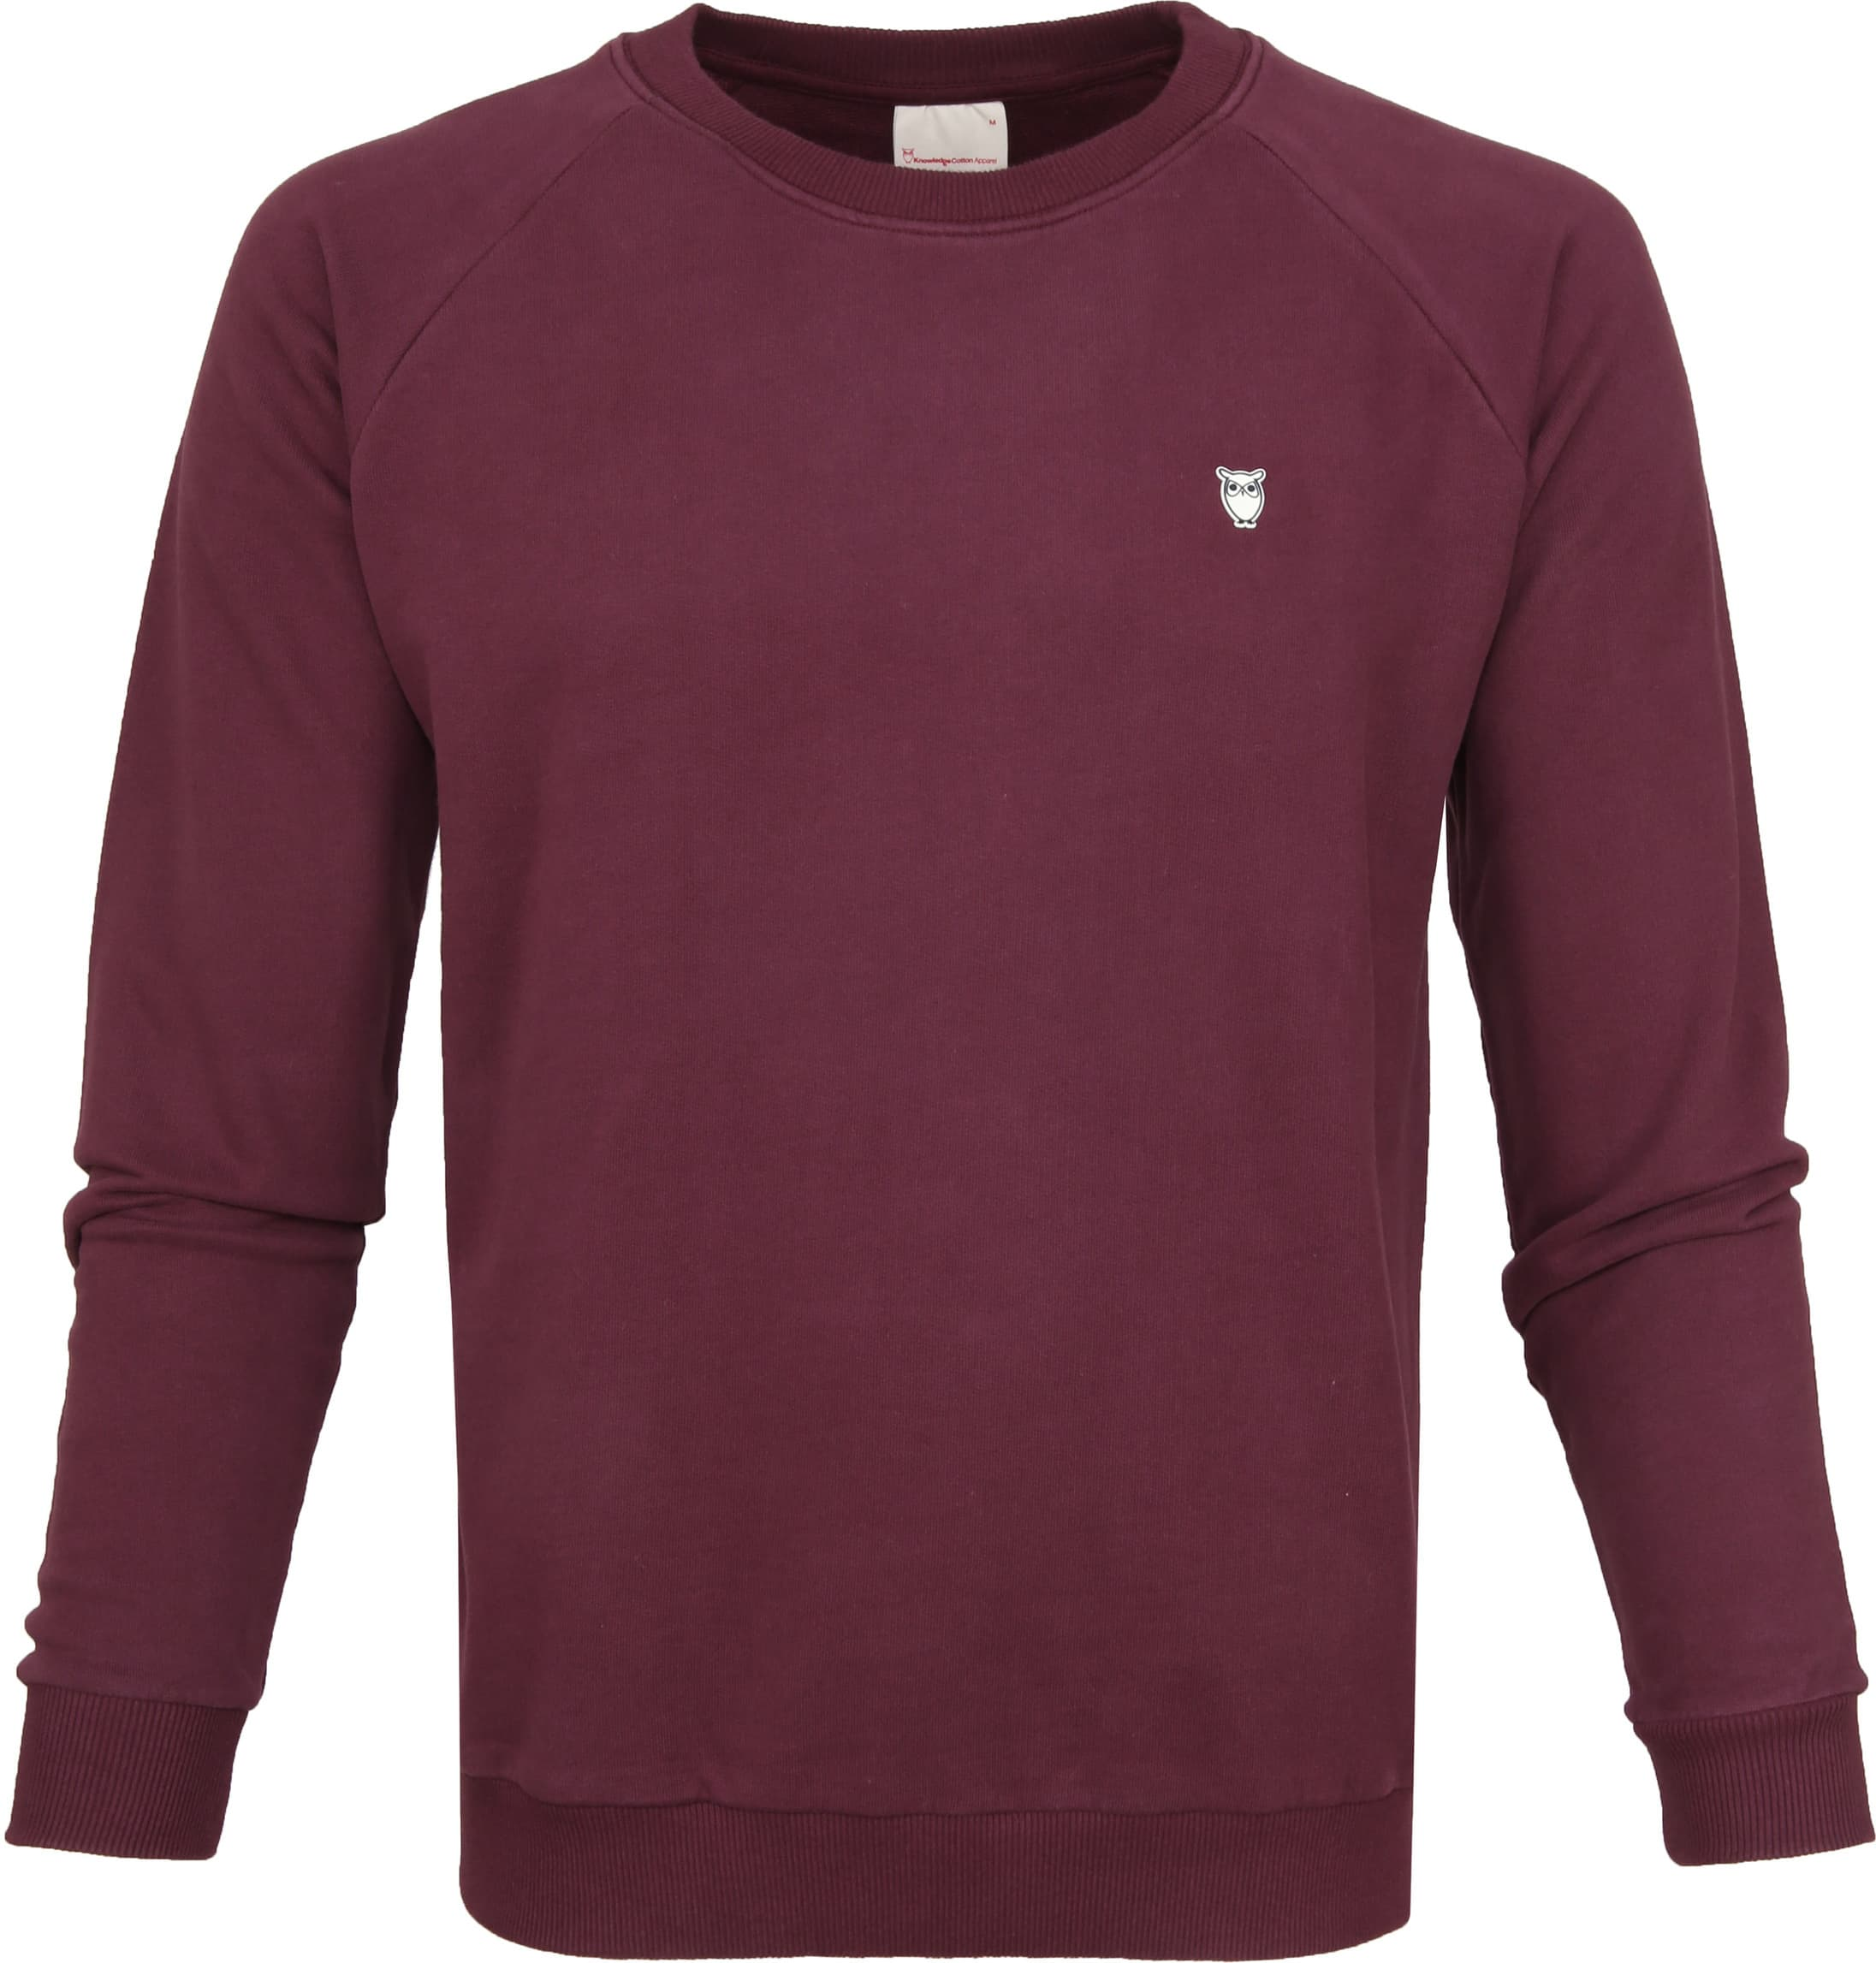 Knowledge Cotton Apparel Trui Bordeaux foto 0